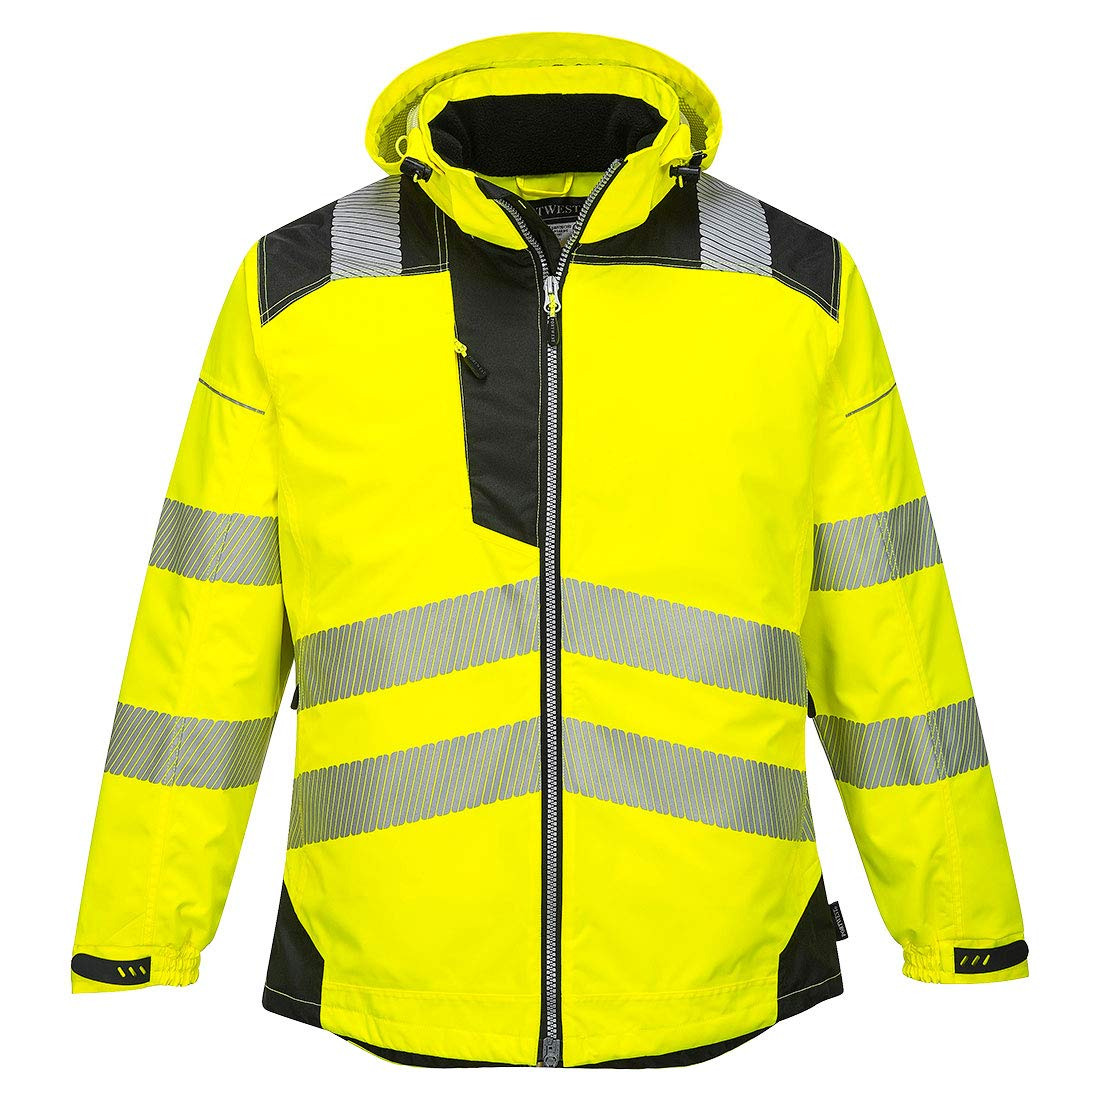 Portwest PW3 Hi-Vis Winter Jacket Work Safety Protective Reflective Waterproof Coat ANSI 3, 6XL by Portwest